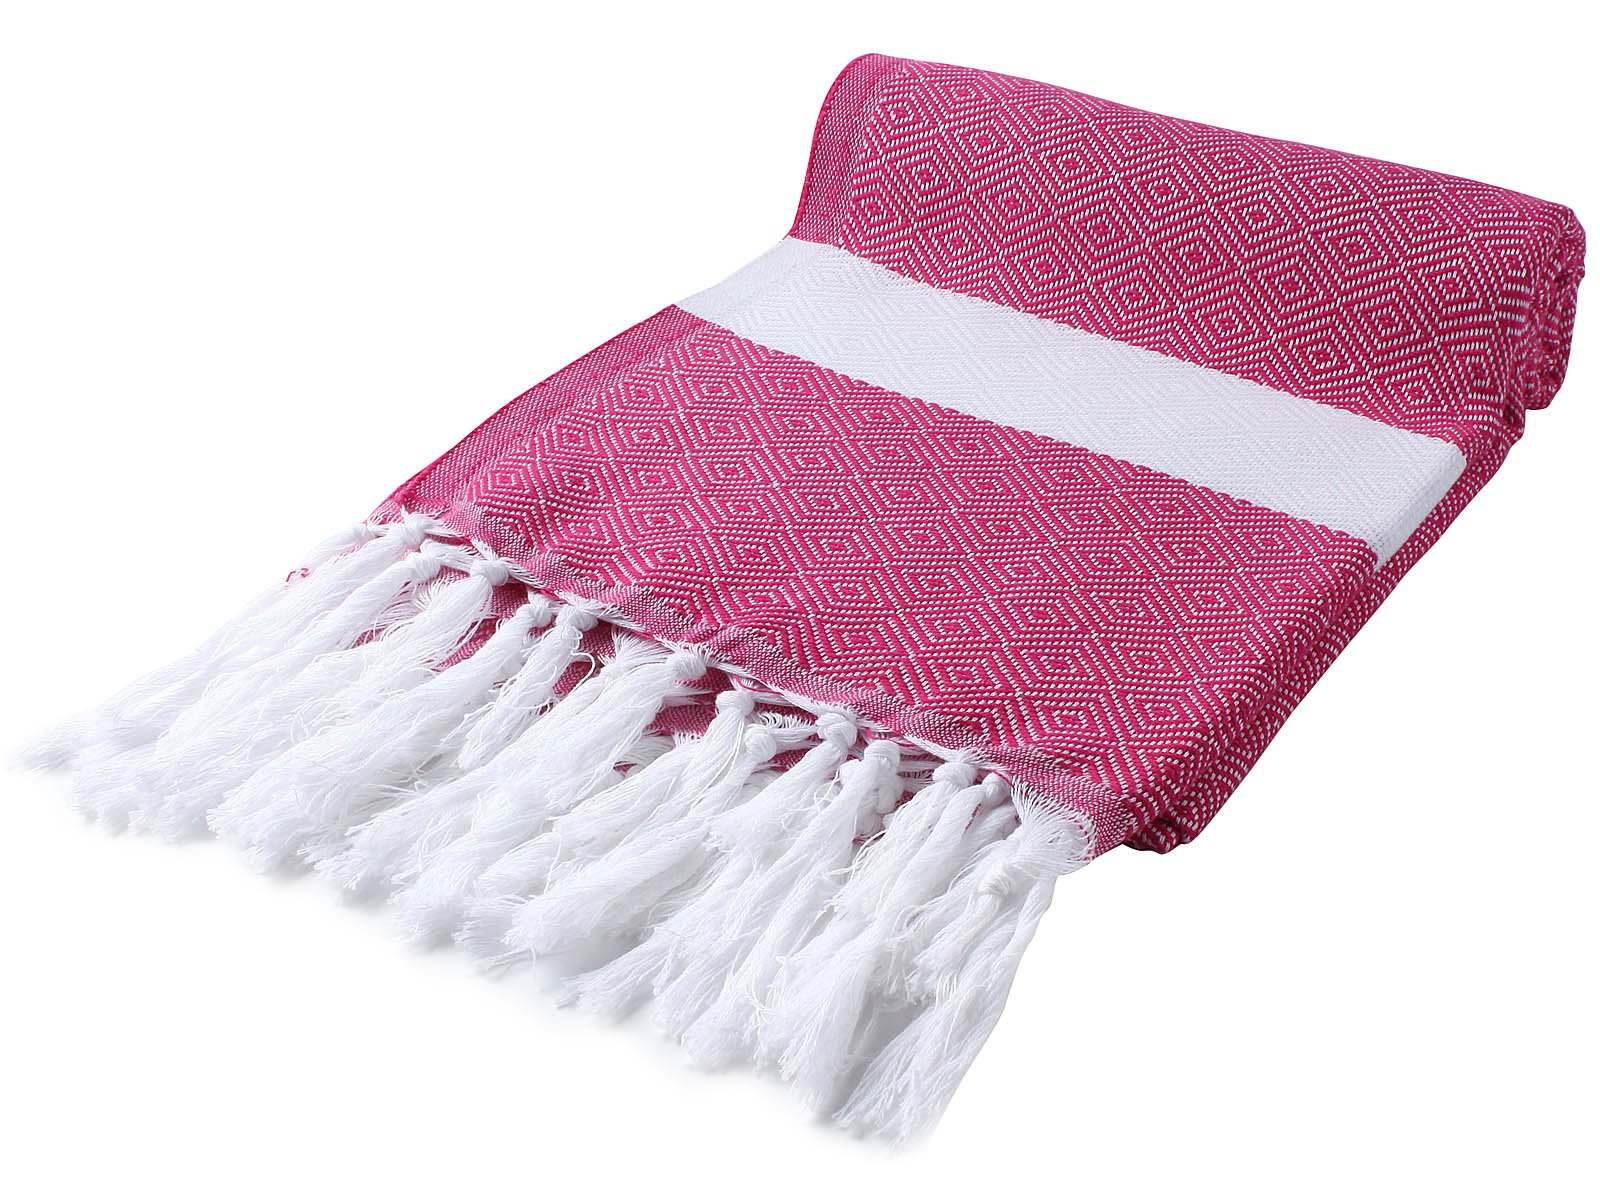 Cacala Peshtemal Turkish Hammam Towel 37x67 100% Cotton Fushia - Ideal for the beach and by the pool they appeal to all ages. Size: 100 x 170 cm ( 37 x 67 inches) - Material: 100% Pure Cotton A favourite of fashionistas, athletes, moms, surfers and alike. - bathroom-linens, bathroom, bath-towels - 81YKaCO6TpL -